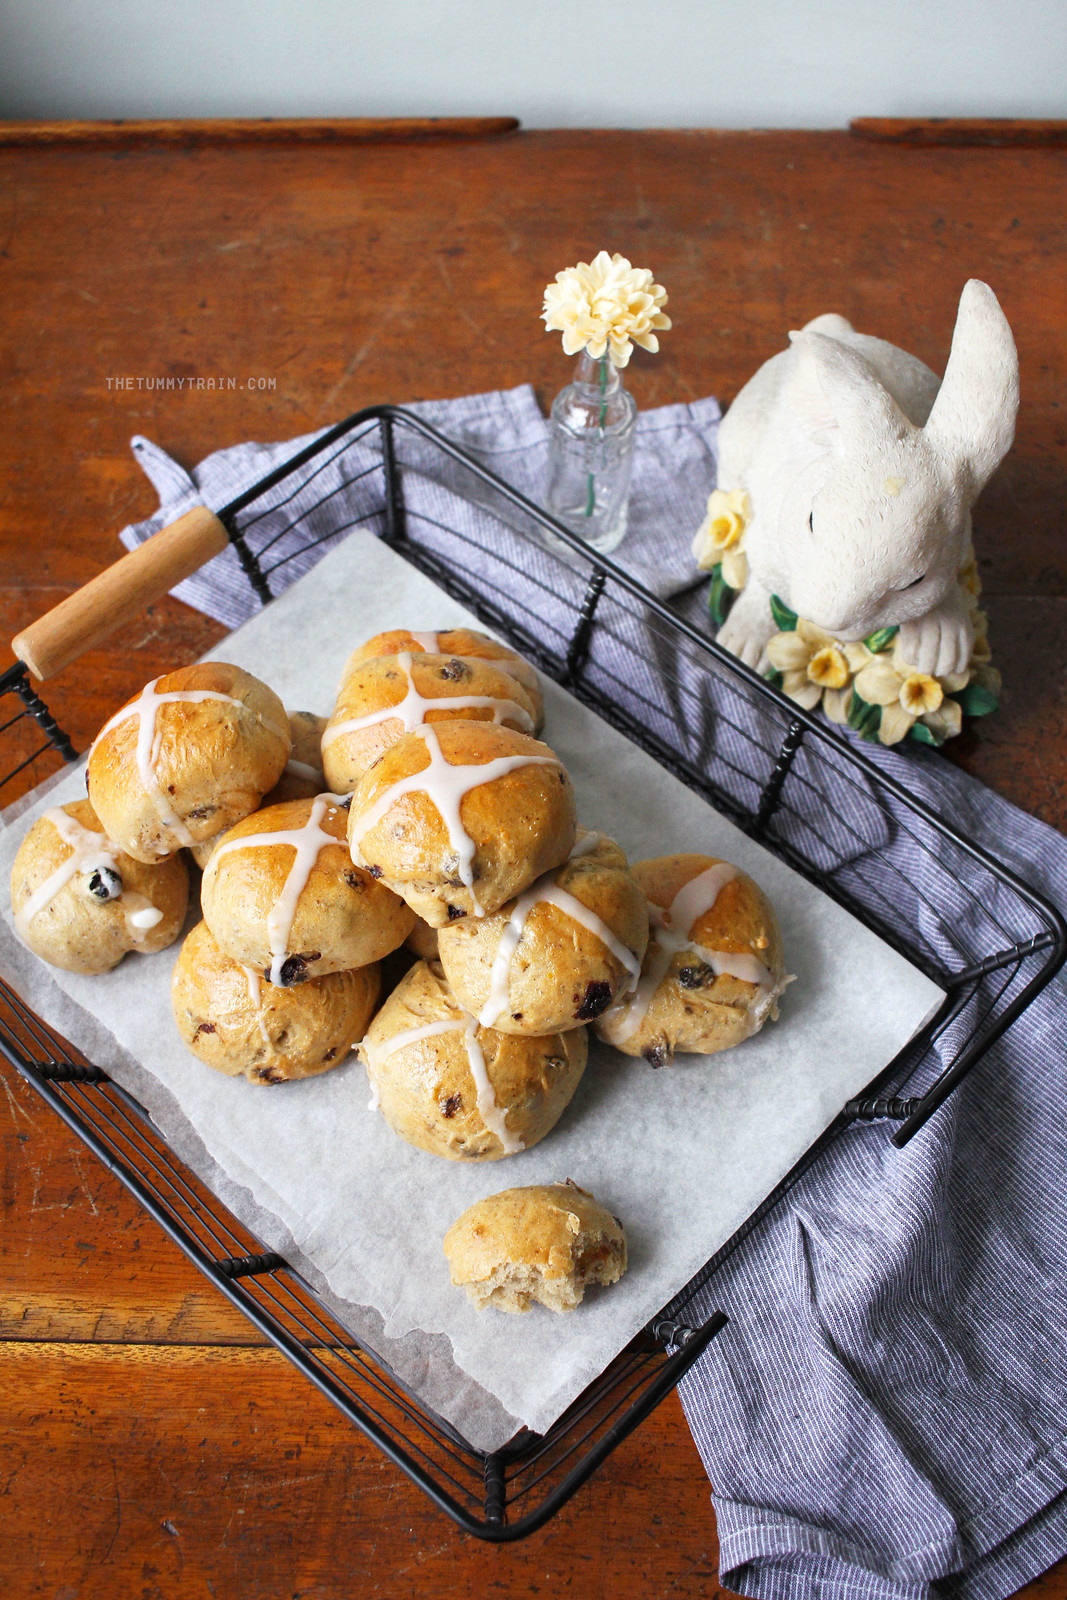 25856007745 7e5dcf3c03 h - Taking an Easter classic up a notch with Rum Raisin Hot Cross Buns and KitchenAid [VIDEO]